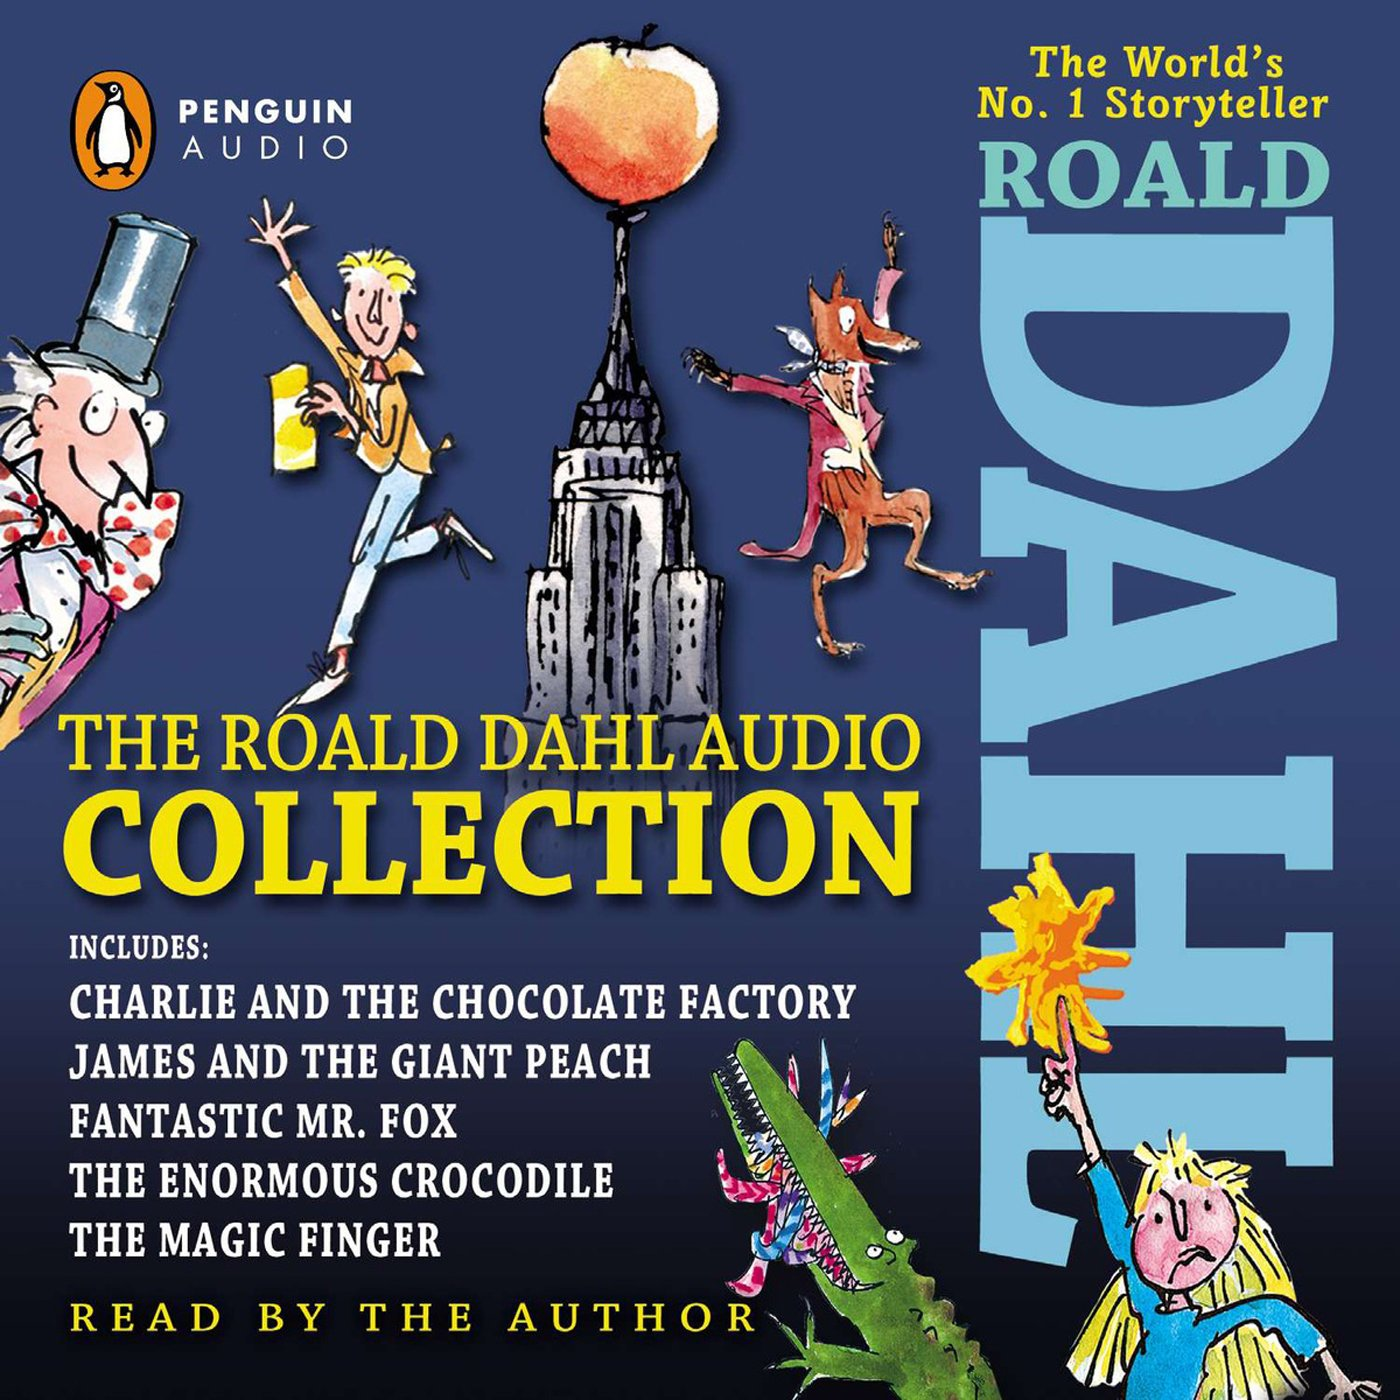 The Roald Dahl Audio Collection: Includes Charlie and the Chocolate Factory, James & the Giant Peach, Fantastic Mr. Fox, The Enormous Crocodile & The Magic Finger by Listening Library (Image #1)